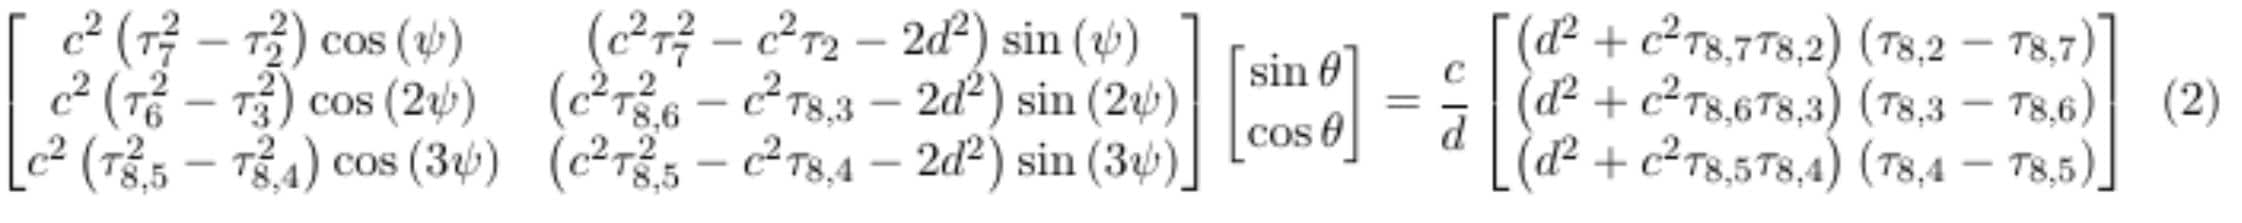 near field angle of arrival equation